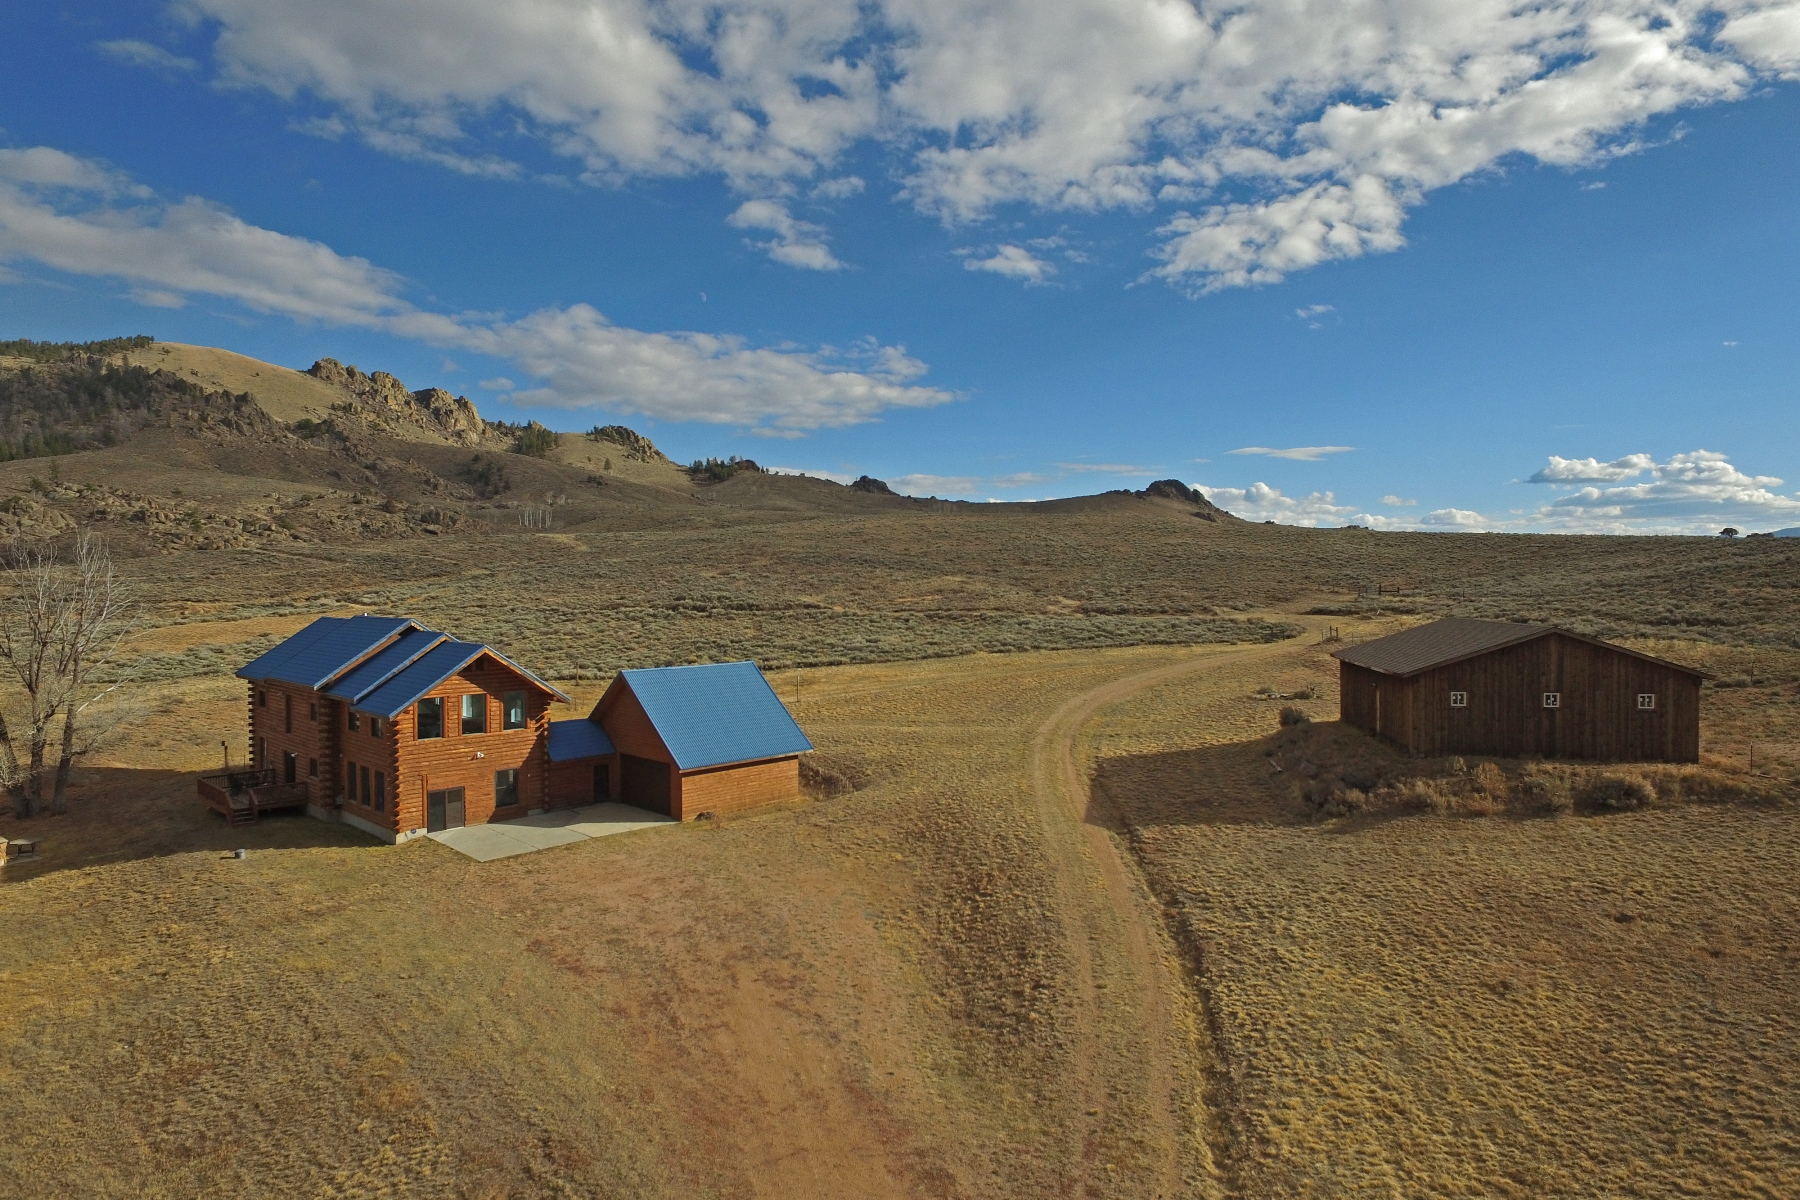 Single Family Home for Sale at Unlimited Possibilities 4892 County Road 76 Parlin, Colorado, 81239 United States